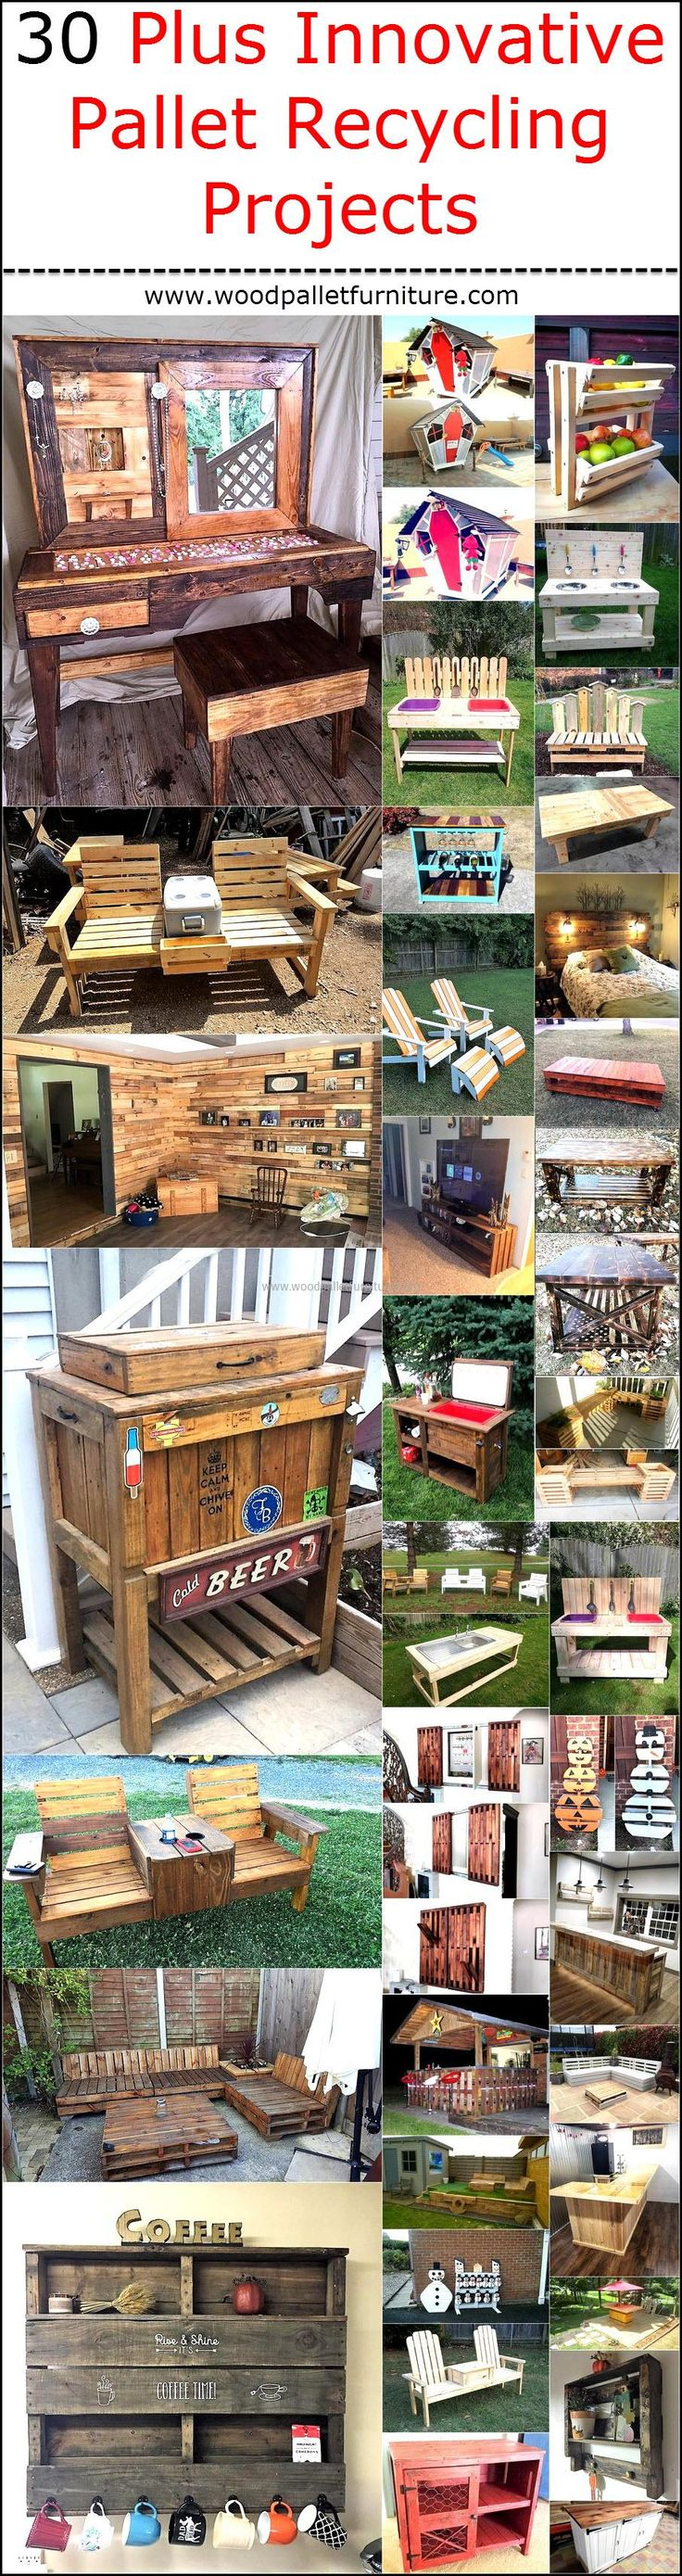 705 best wooden pallet furniture images on pinterest - Palette recyclee ...